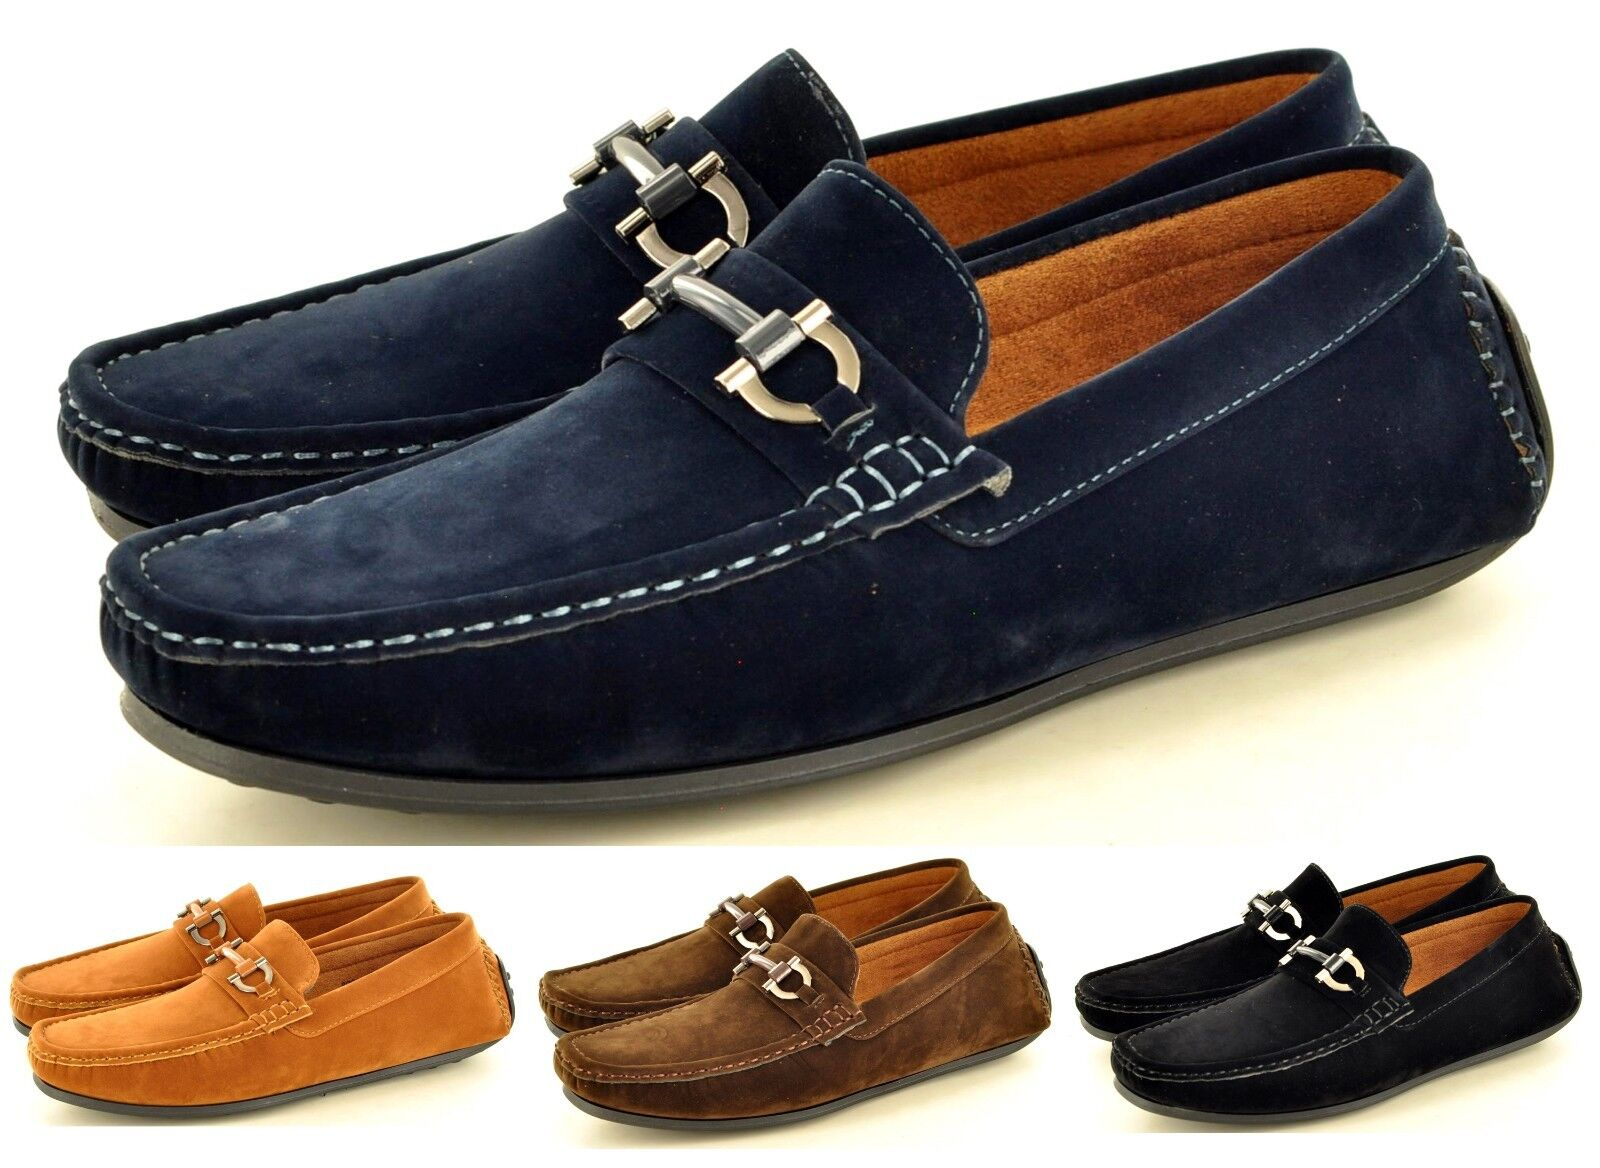 New Men's Faux Suede Casual Loafers Moccasins UK Slip on Shoes Avail. UK Moccasins Sizes 6-11 d30ac5